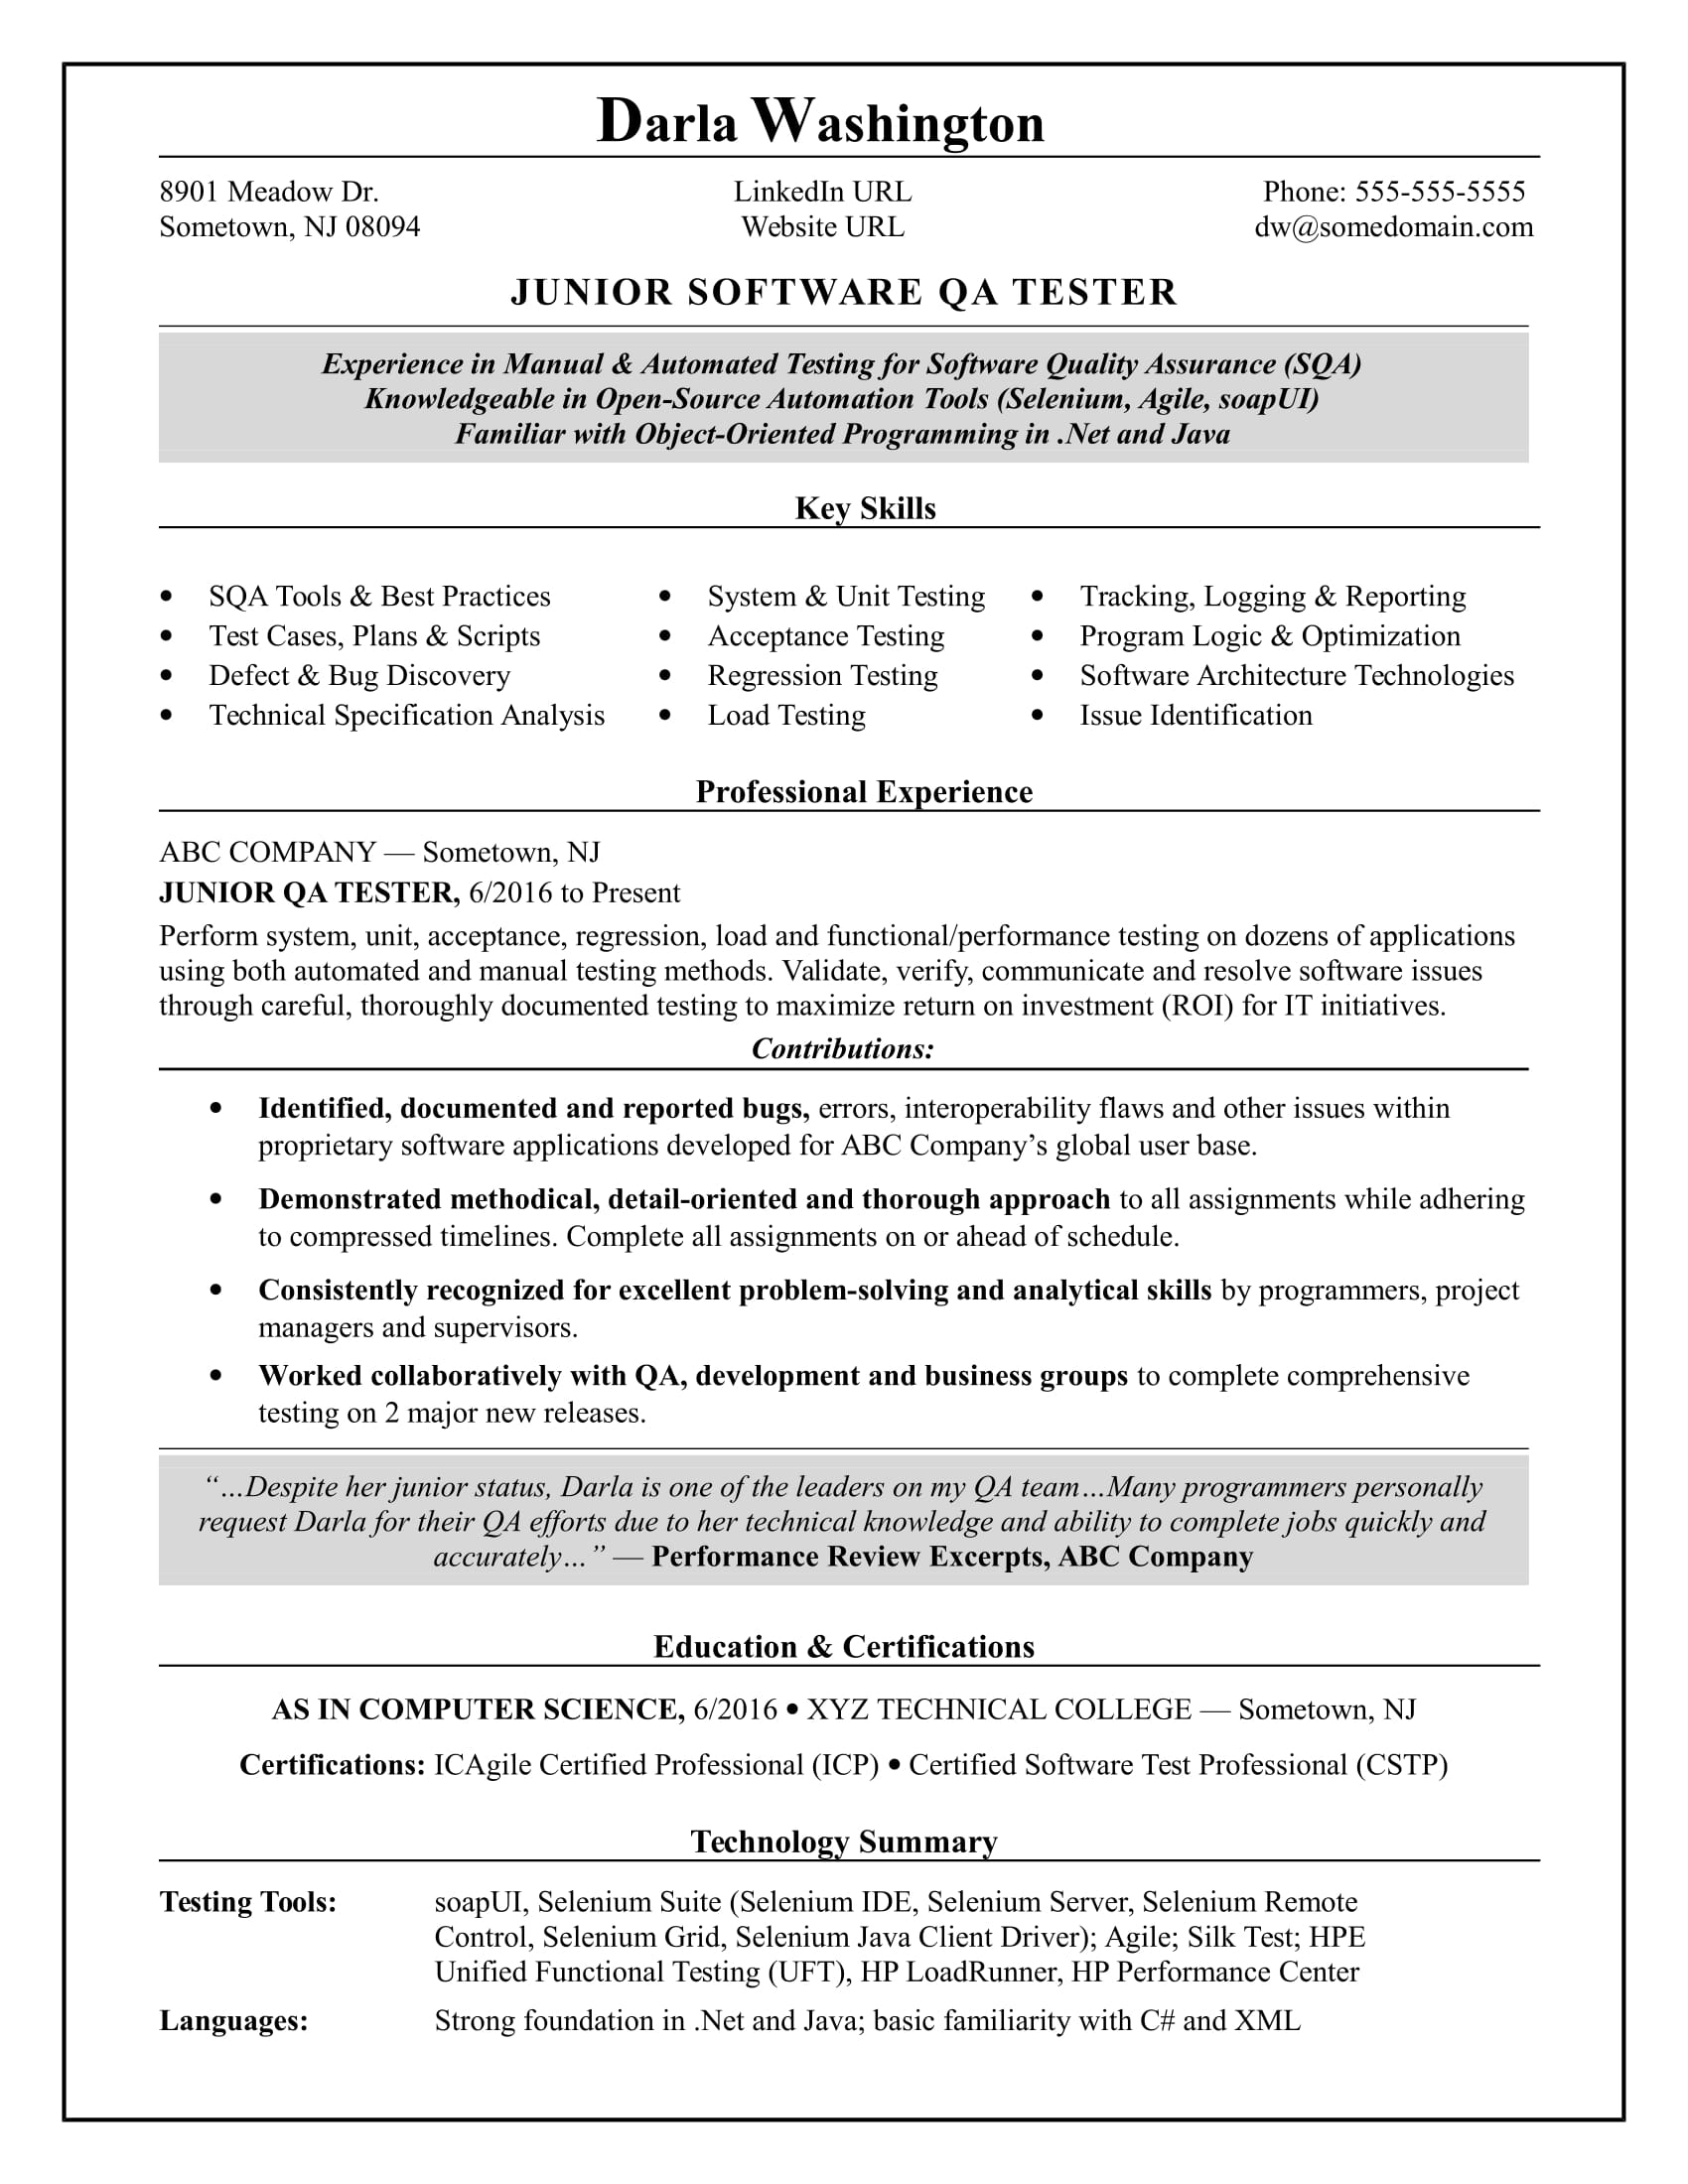 entry level qa software tester resume sample monster loadrunner experience technical Resume Loadrunner Experience Resume